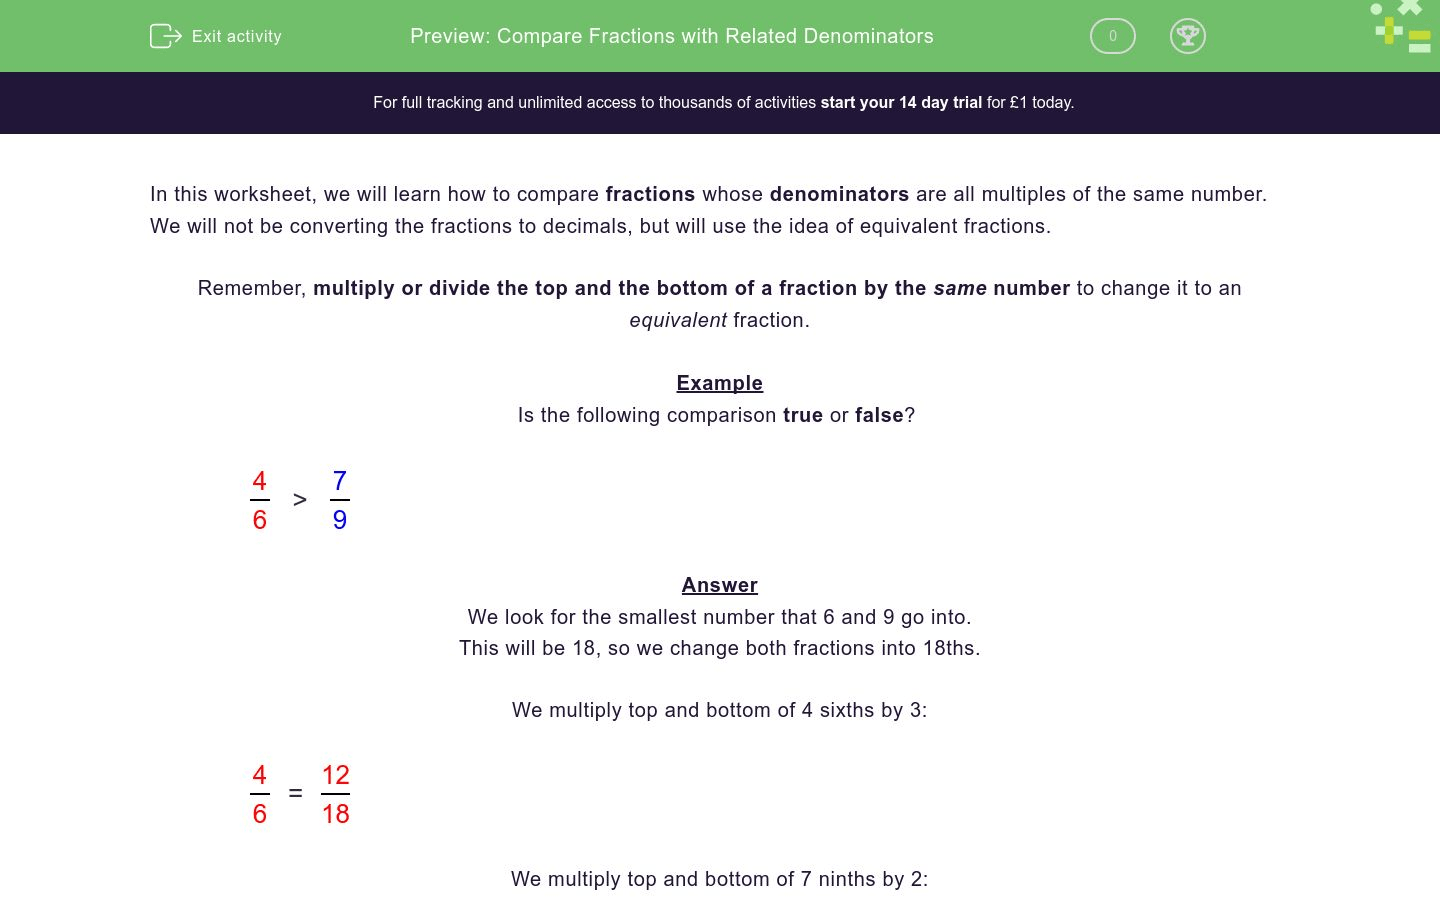 Compare Fractions With Related Denominators Worksheet